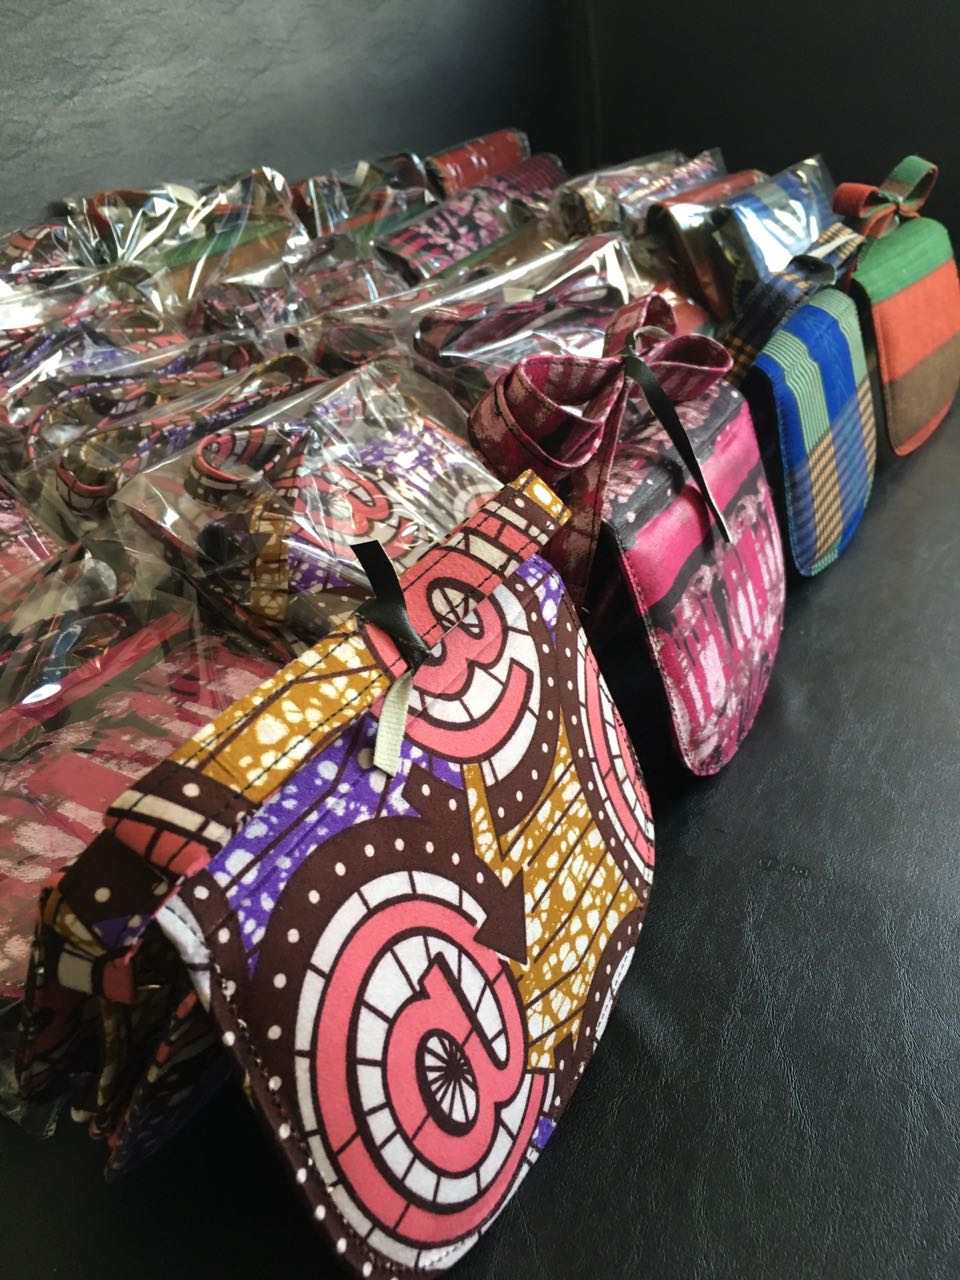 ankara bags, bags, handbags, nigerian goods, fashion and style, trendy, collection, wedding gift ideas, souvenir ideas, event planning, wedding planning, best souvenir ideas, affordable souvenirs, planning a wedding, asoebi, asoebi bella, brides to be, grooms, bridesmaid duties, bridesmaids gift ideas, bags, made in nigeria products